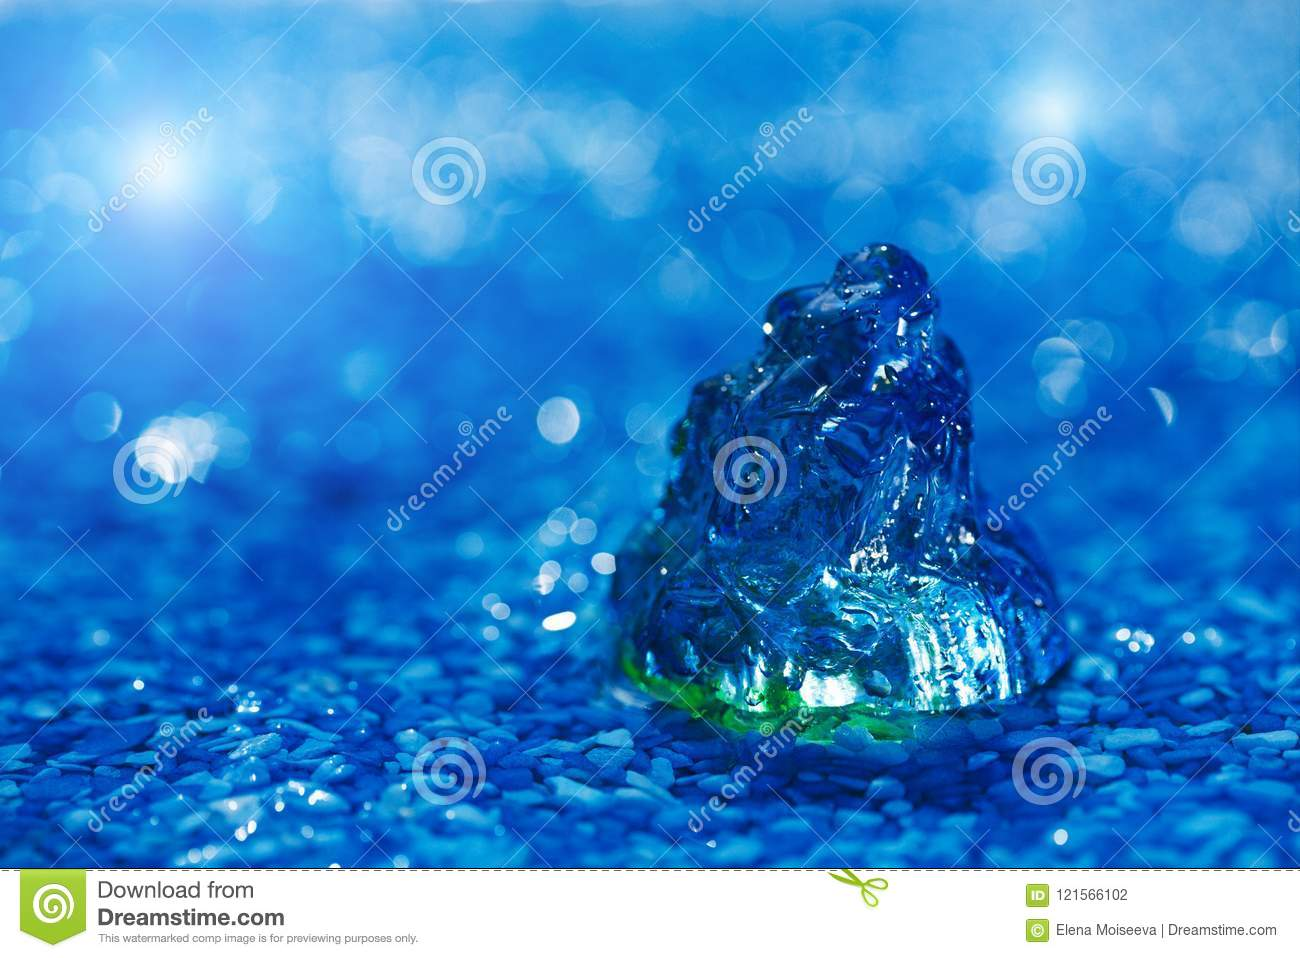 Large scallop glass sea shell on blue pebble under water droplet